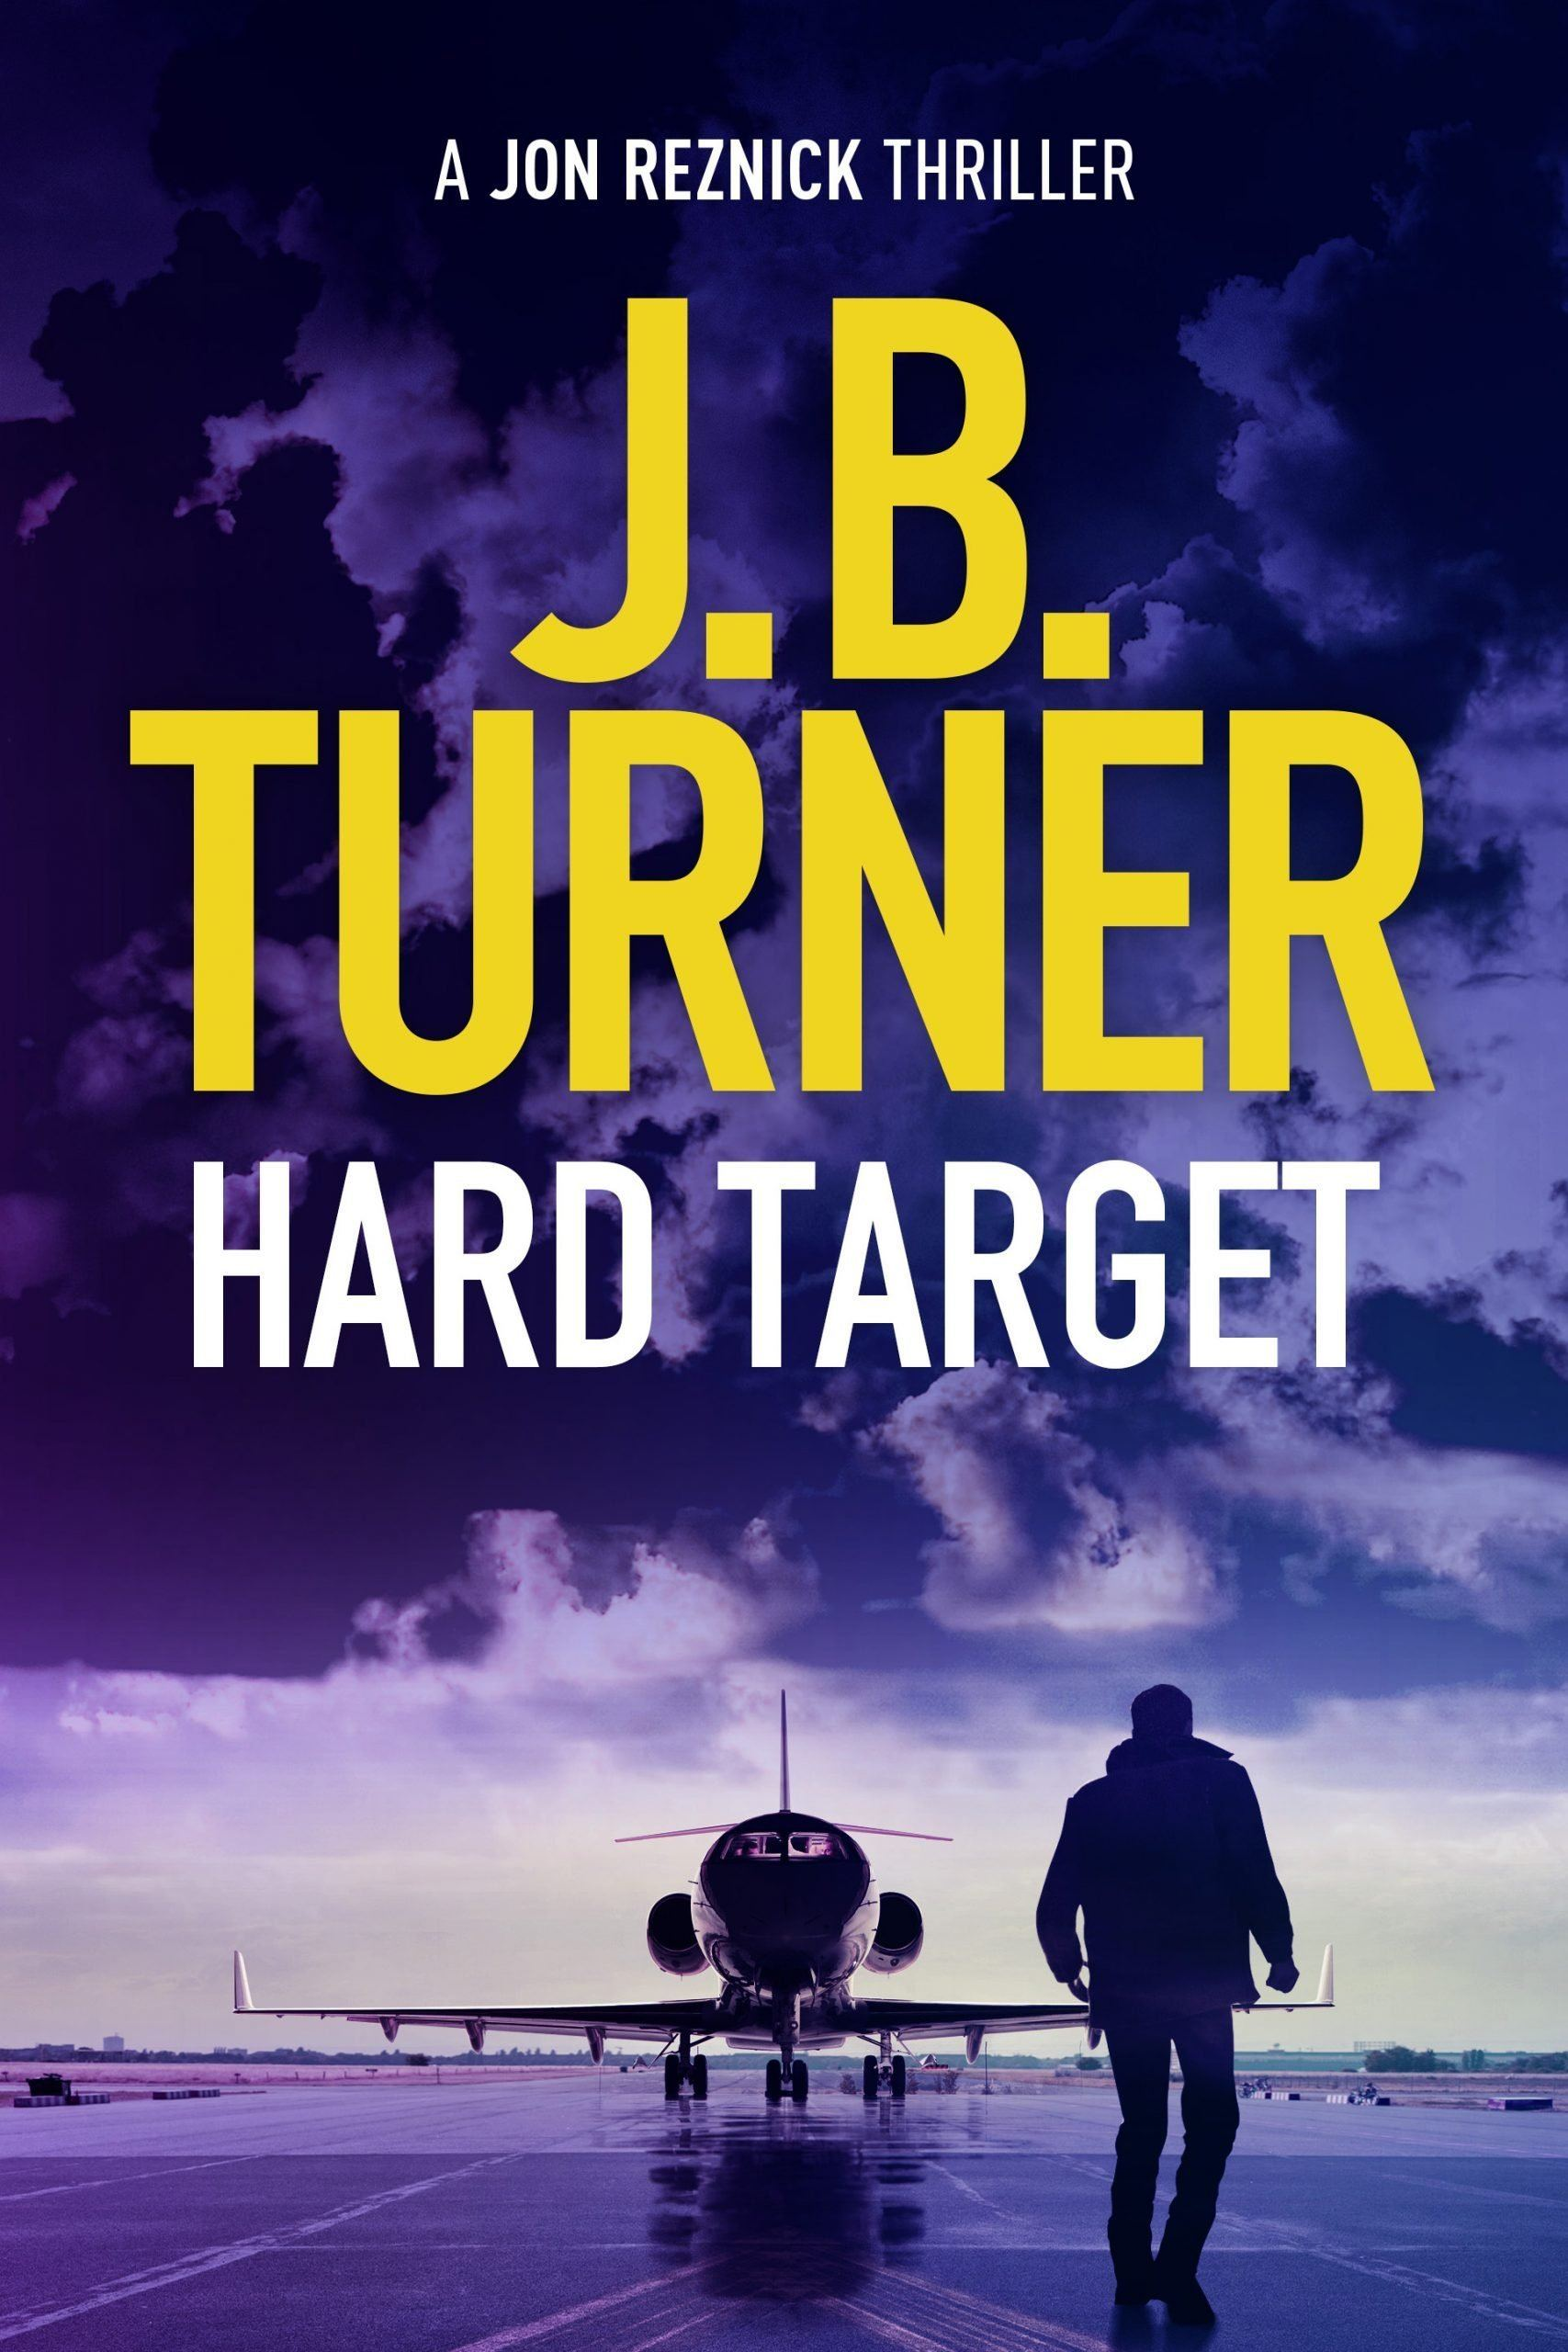 Cover for J.B. Turner's Jon Reznick thriller, Hard Target